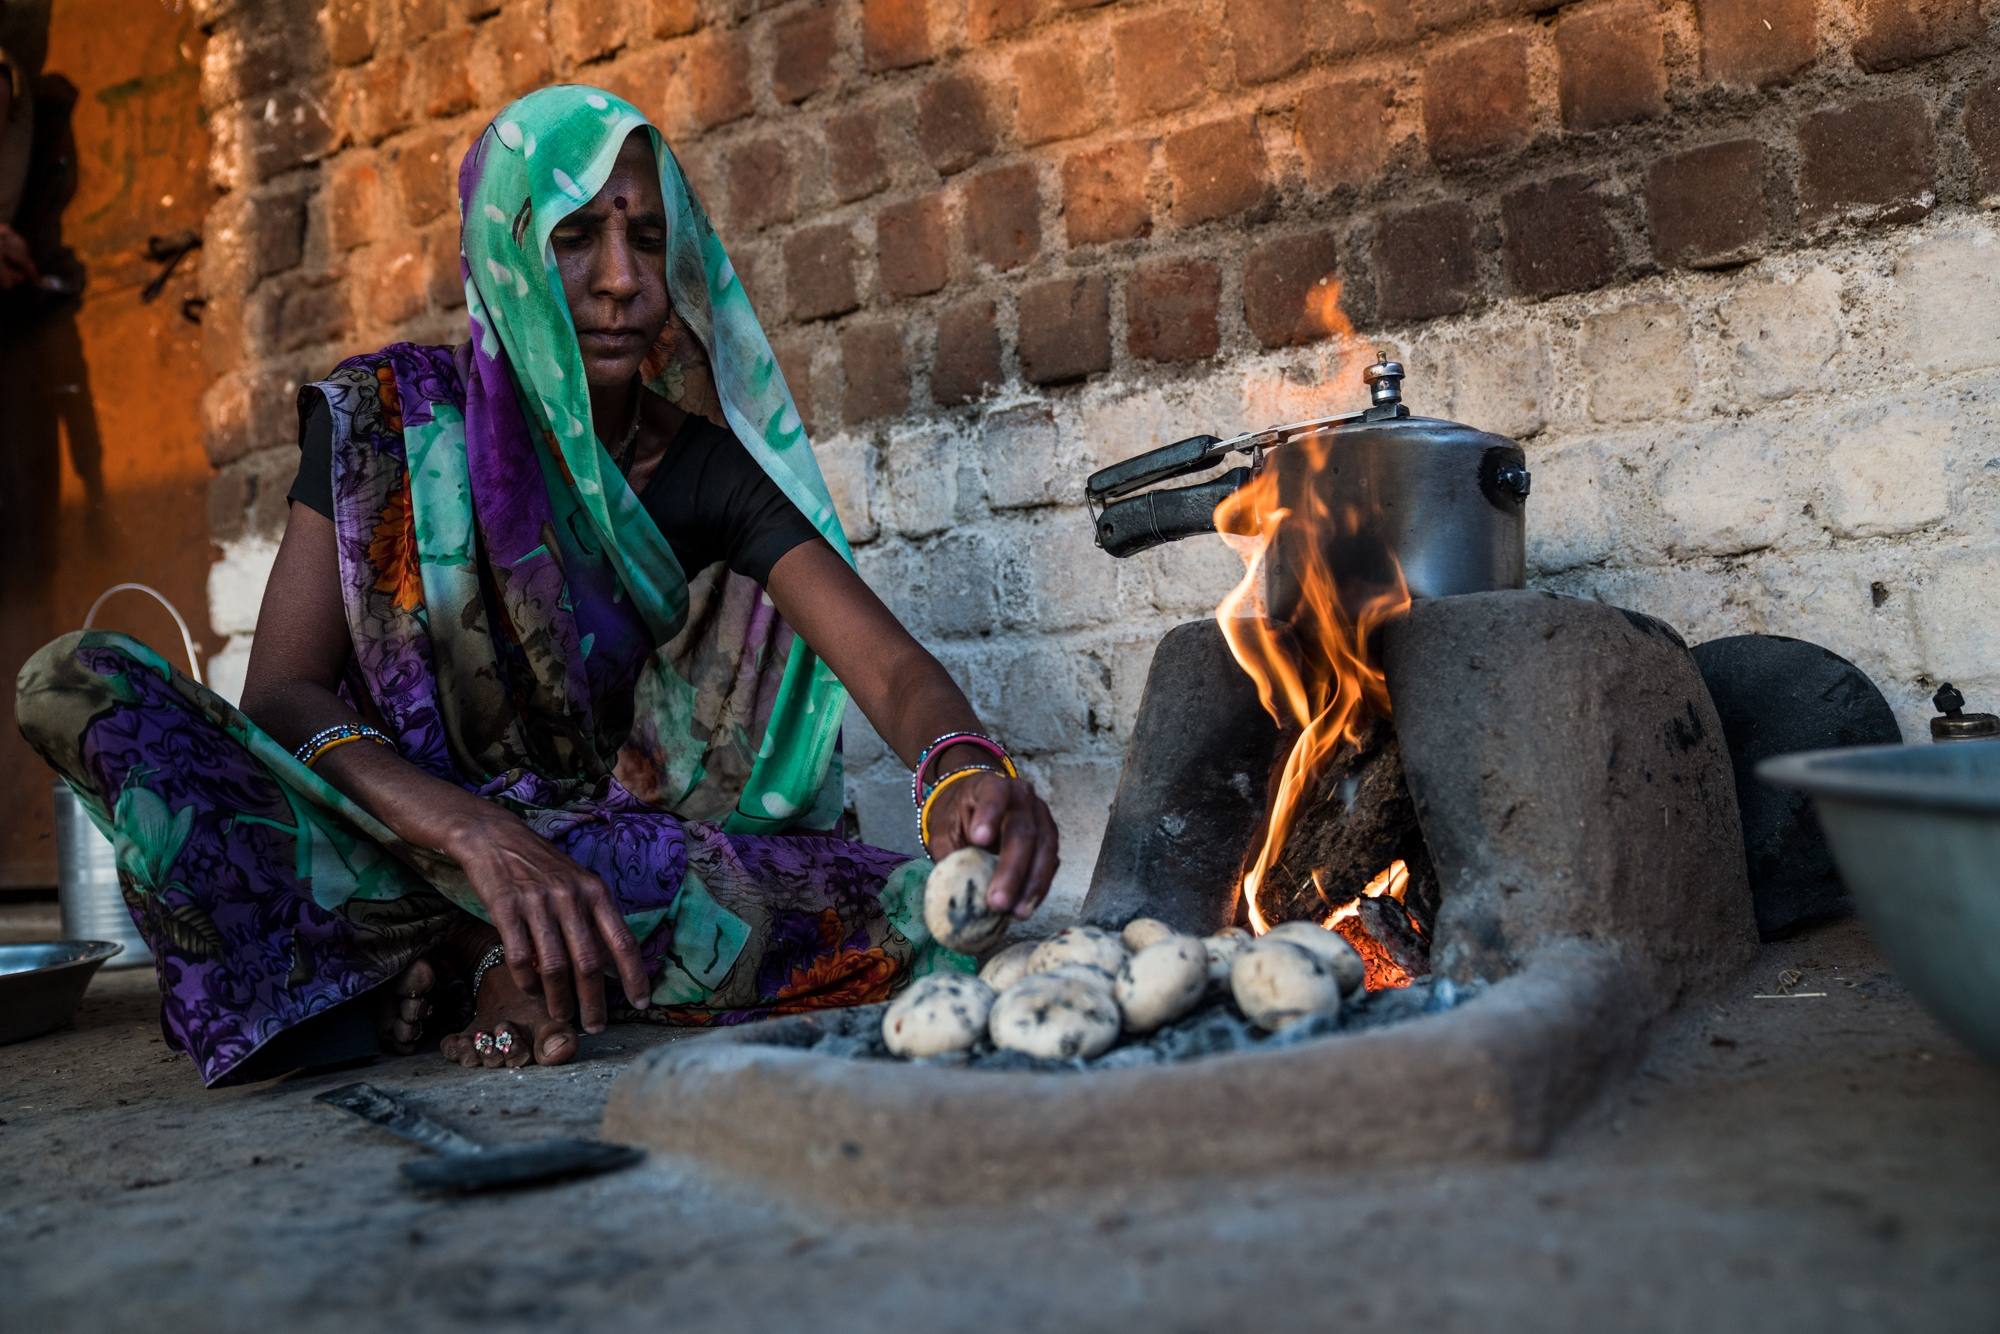 A woman prepares dinner from a dung-fulled fire in Central India.